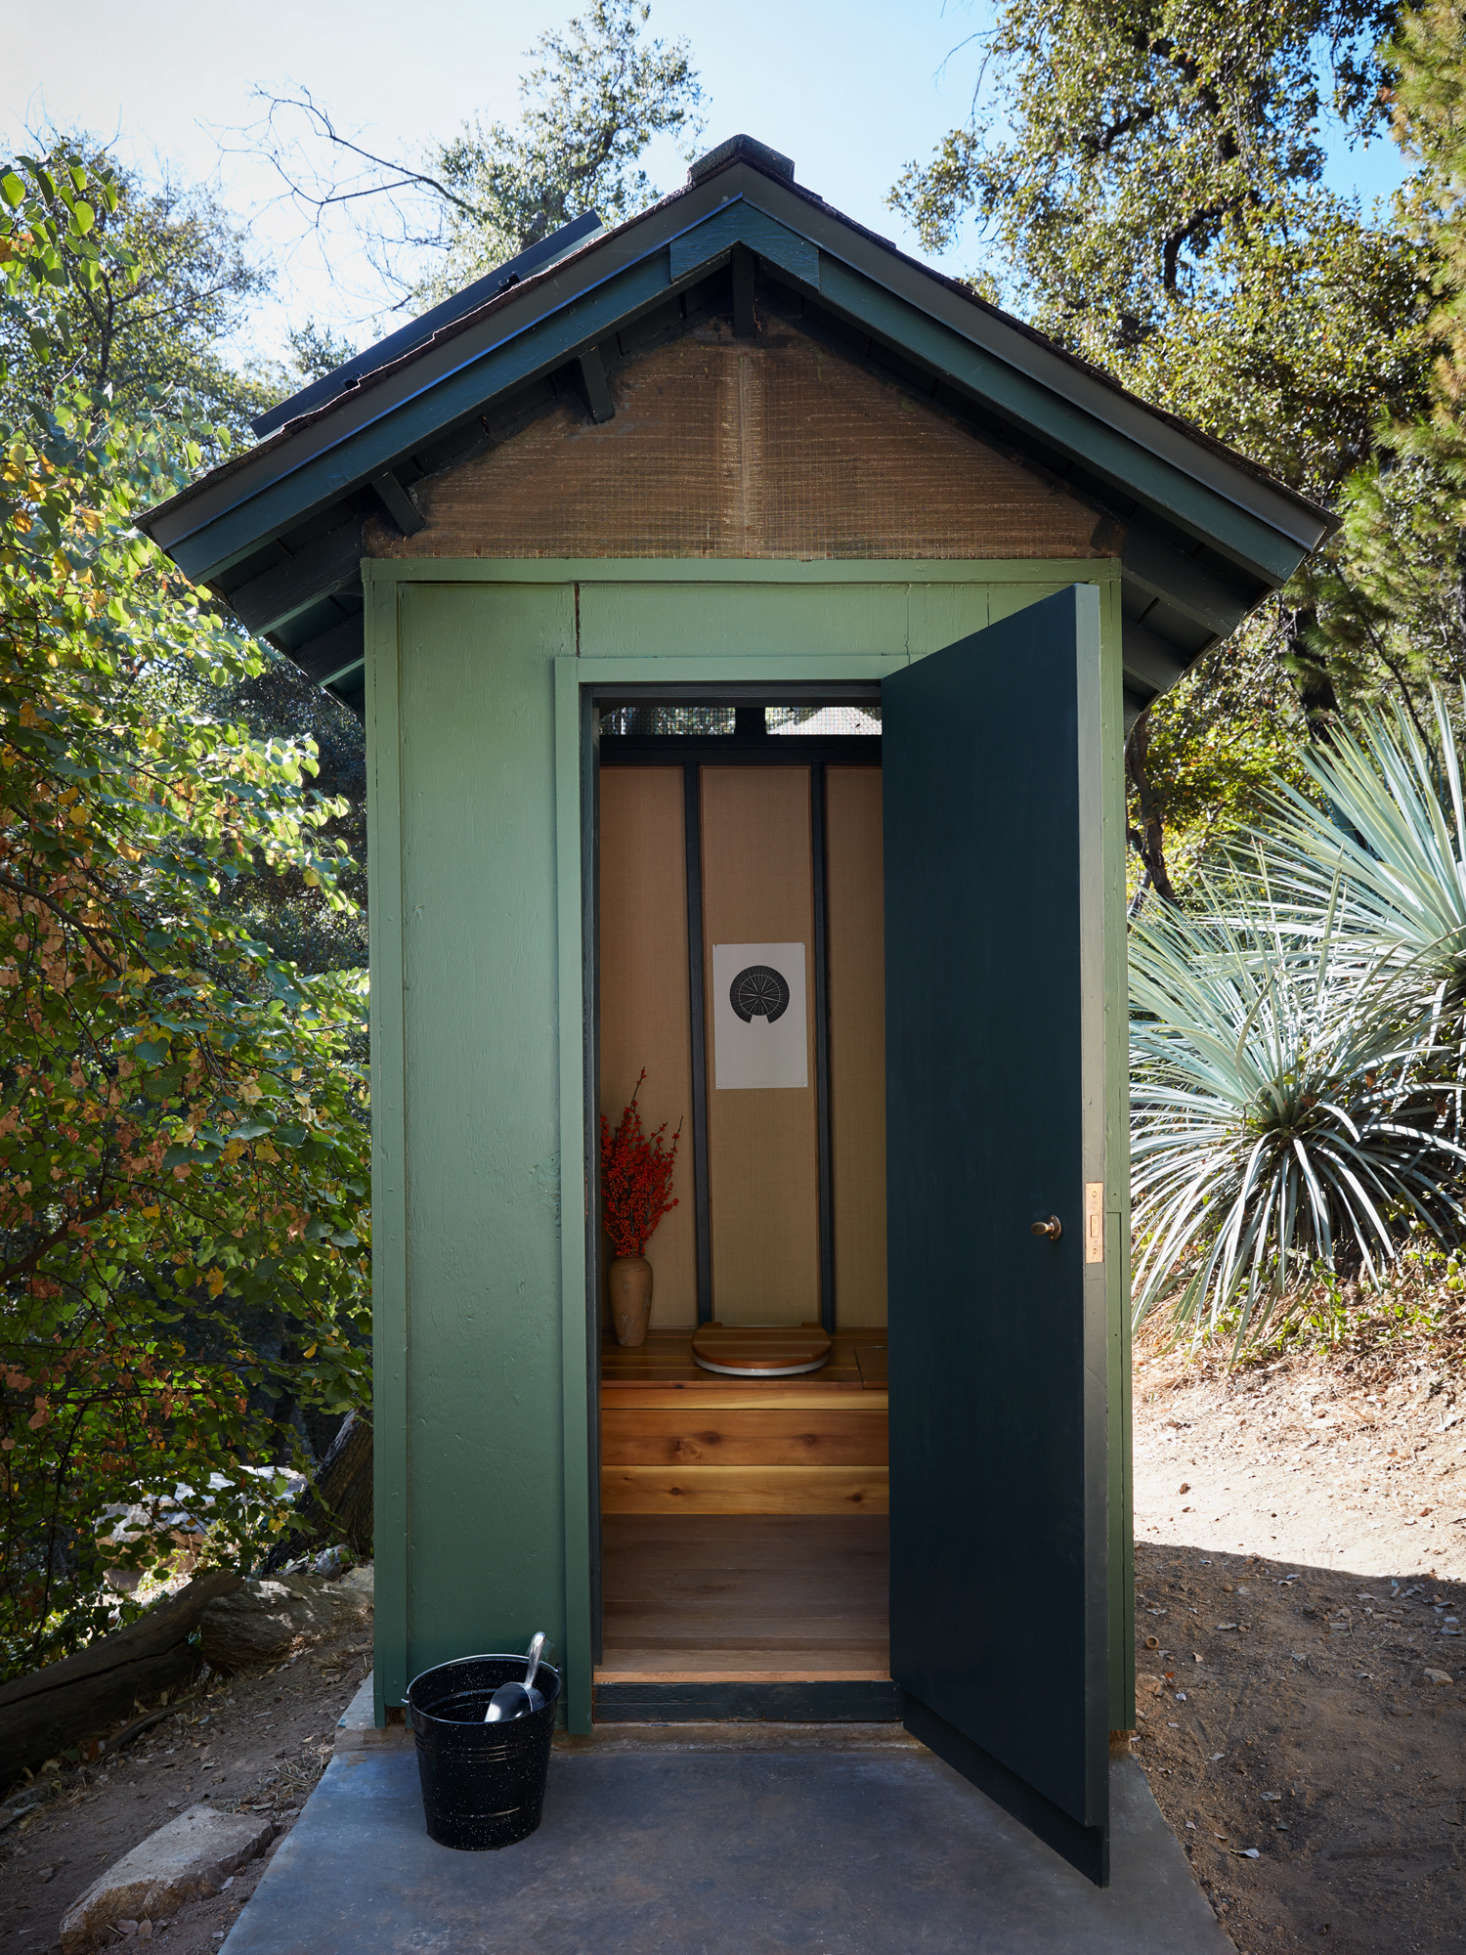 This may be the most charming outhouse with a composting toilet ever.